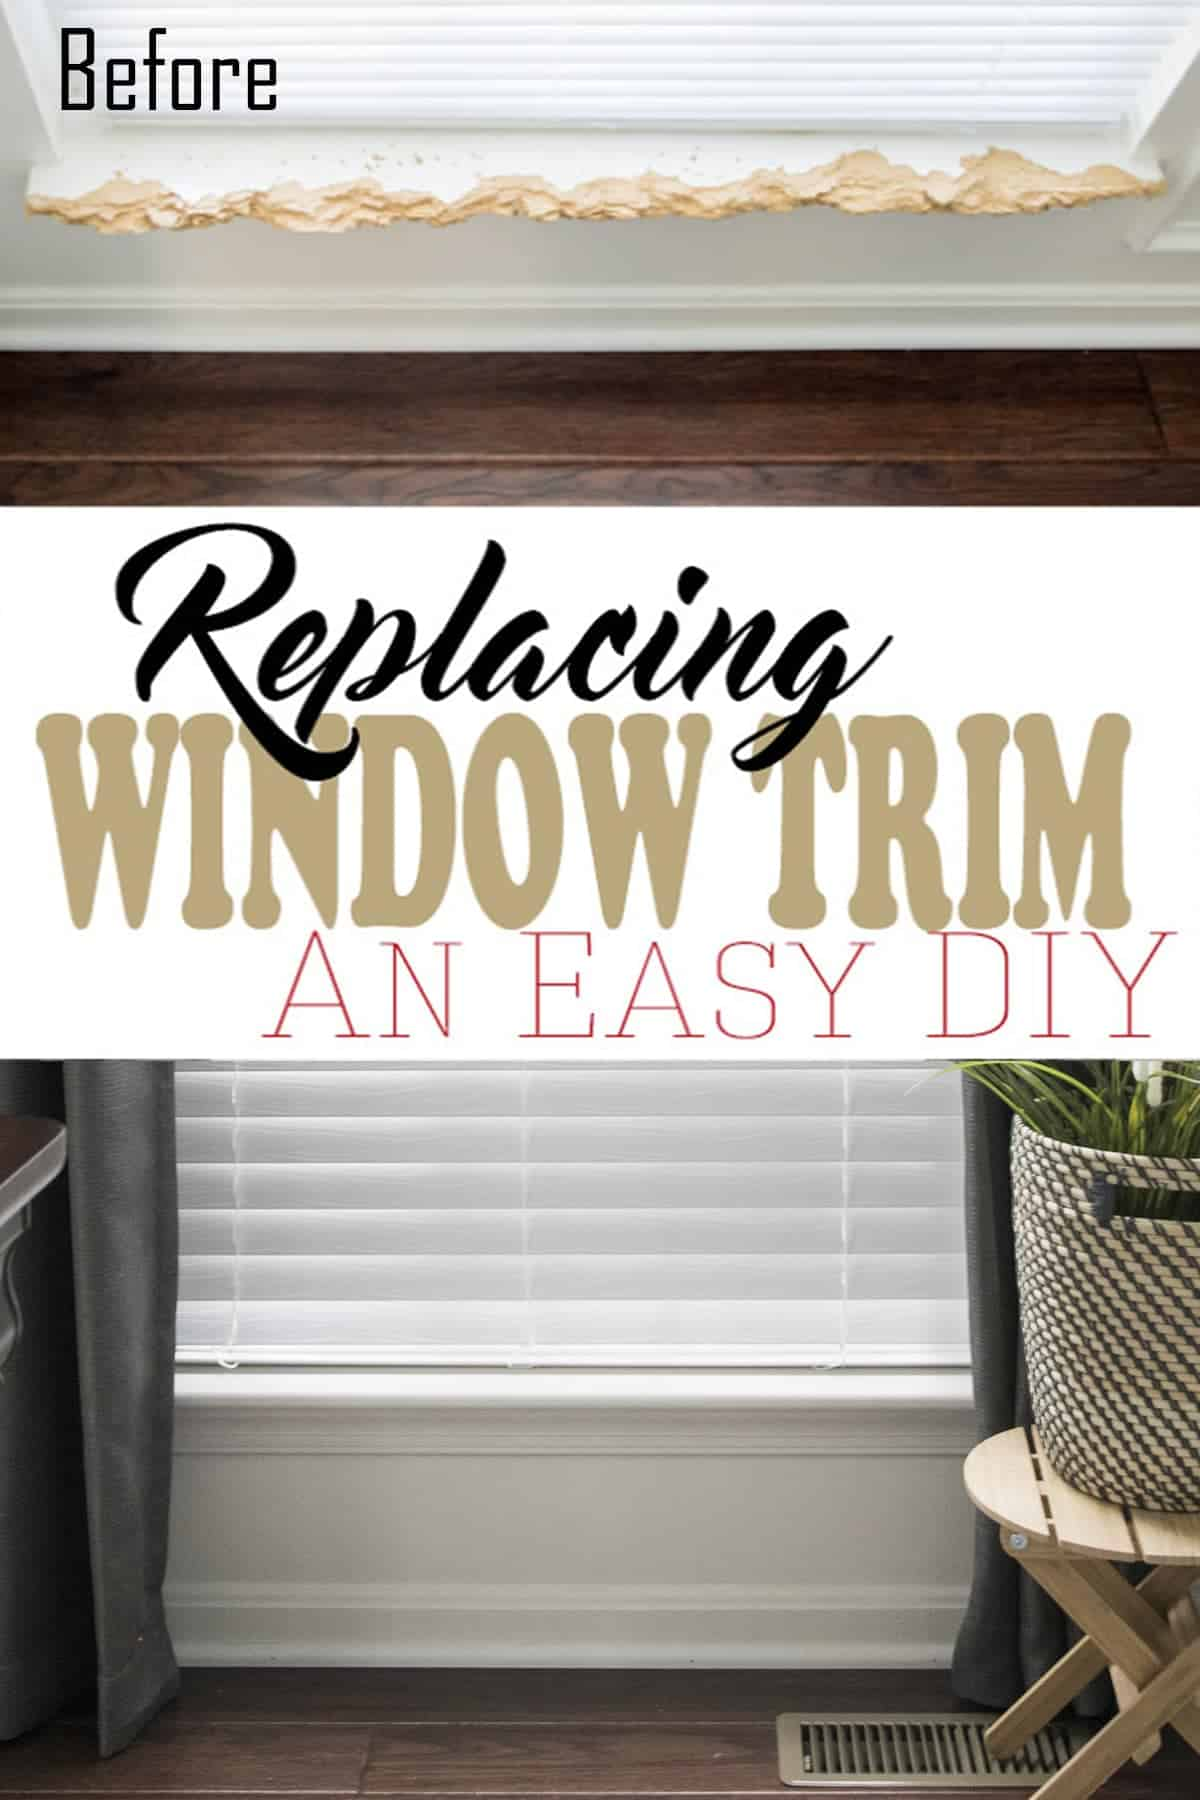 Crisp window trim and sills make a wall paint shine as well as curtains. Repairing and caulking window trim doesn't have to be scary with these pro tips for replacing window sills and trim.